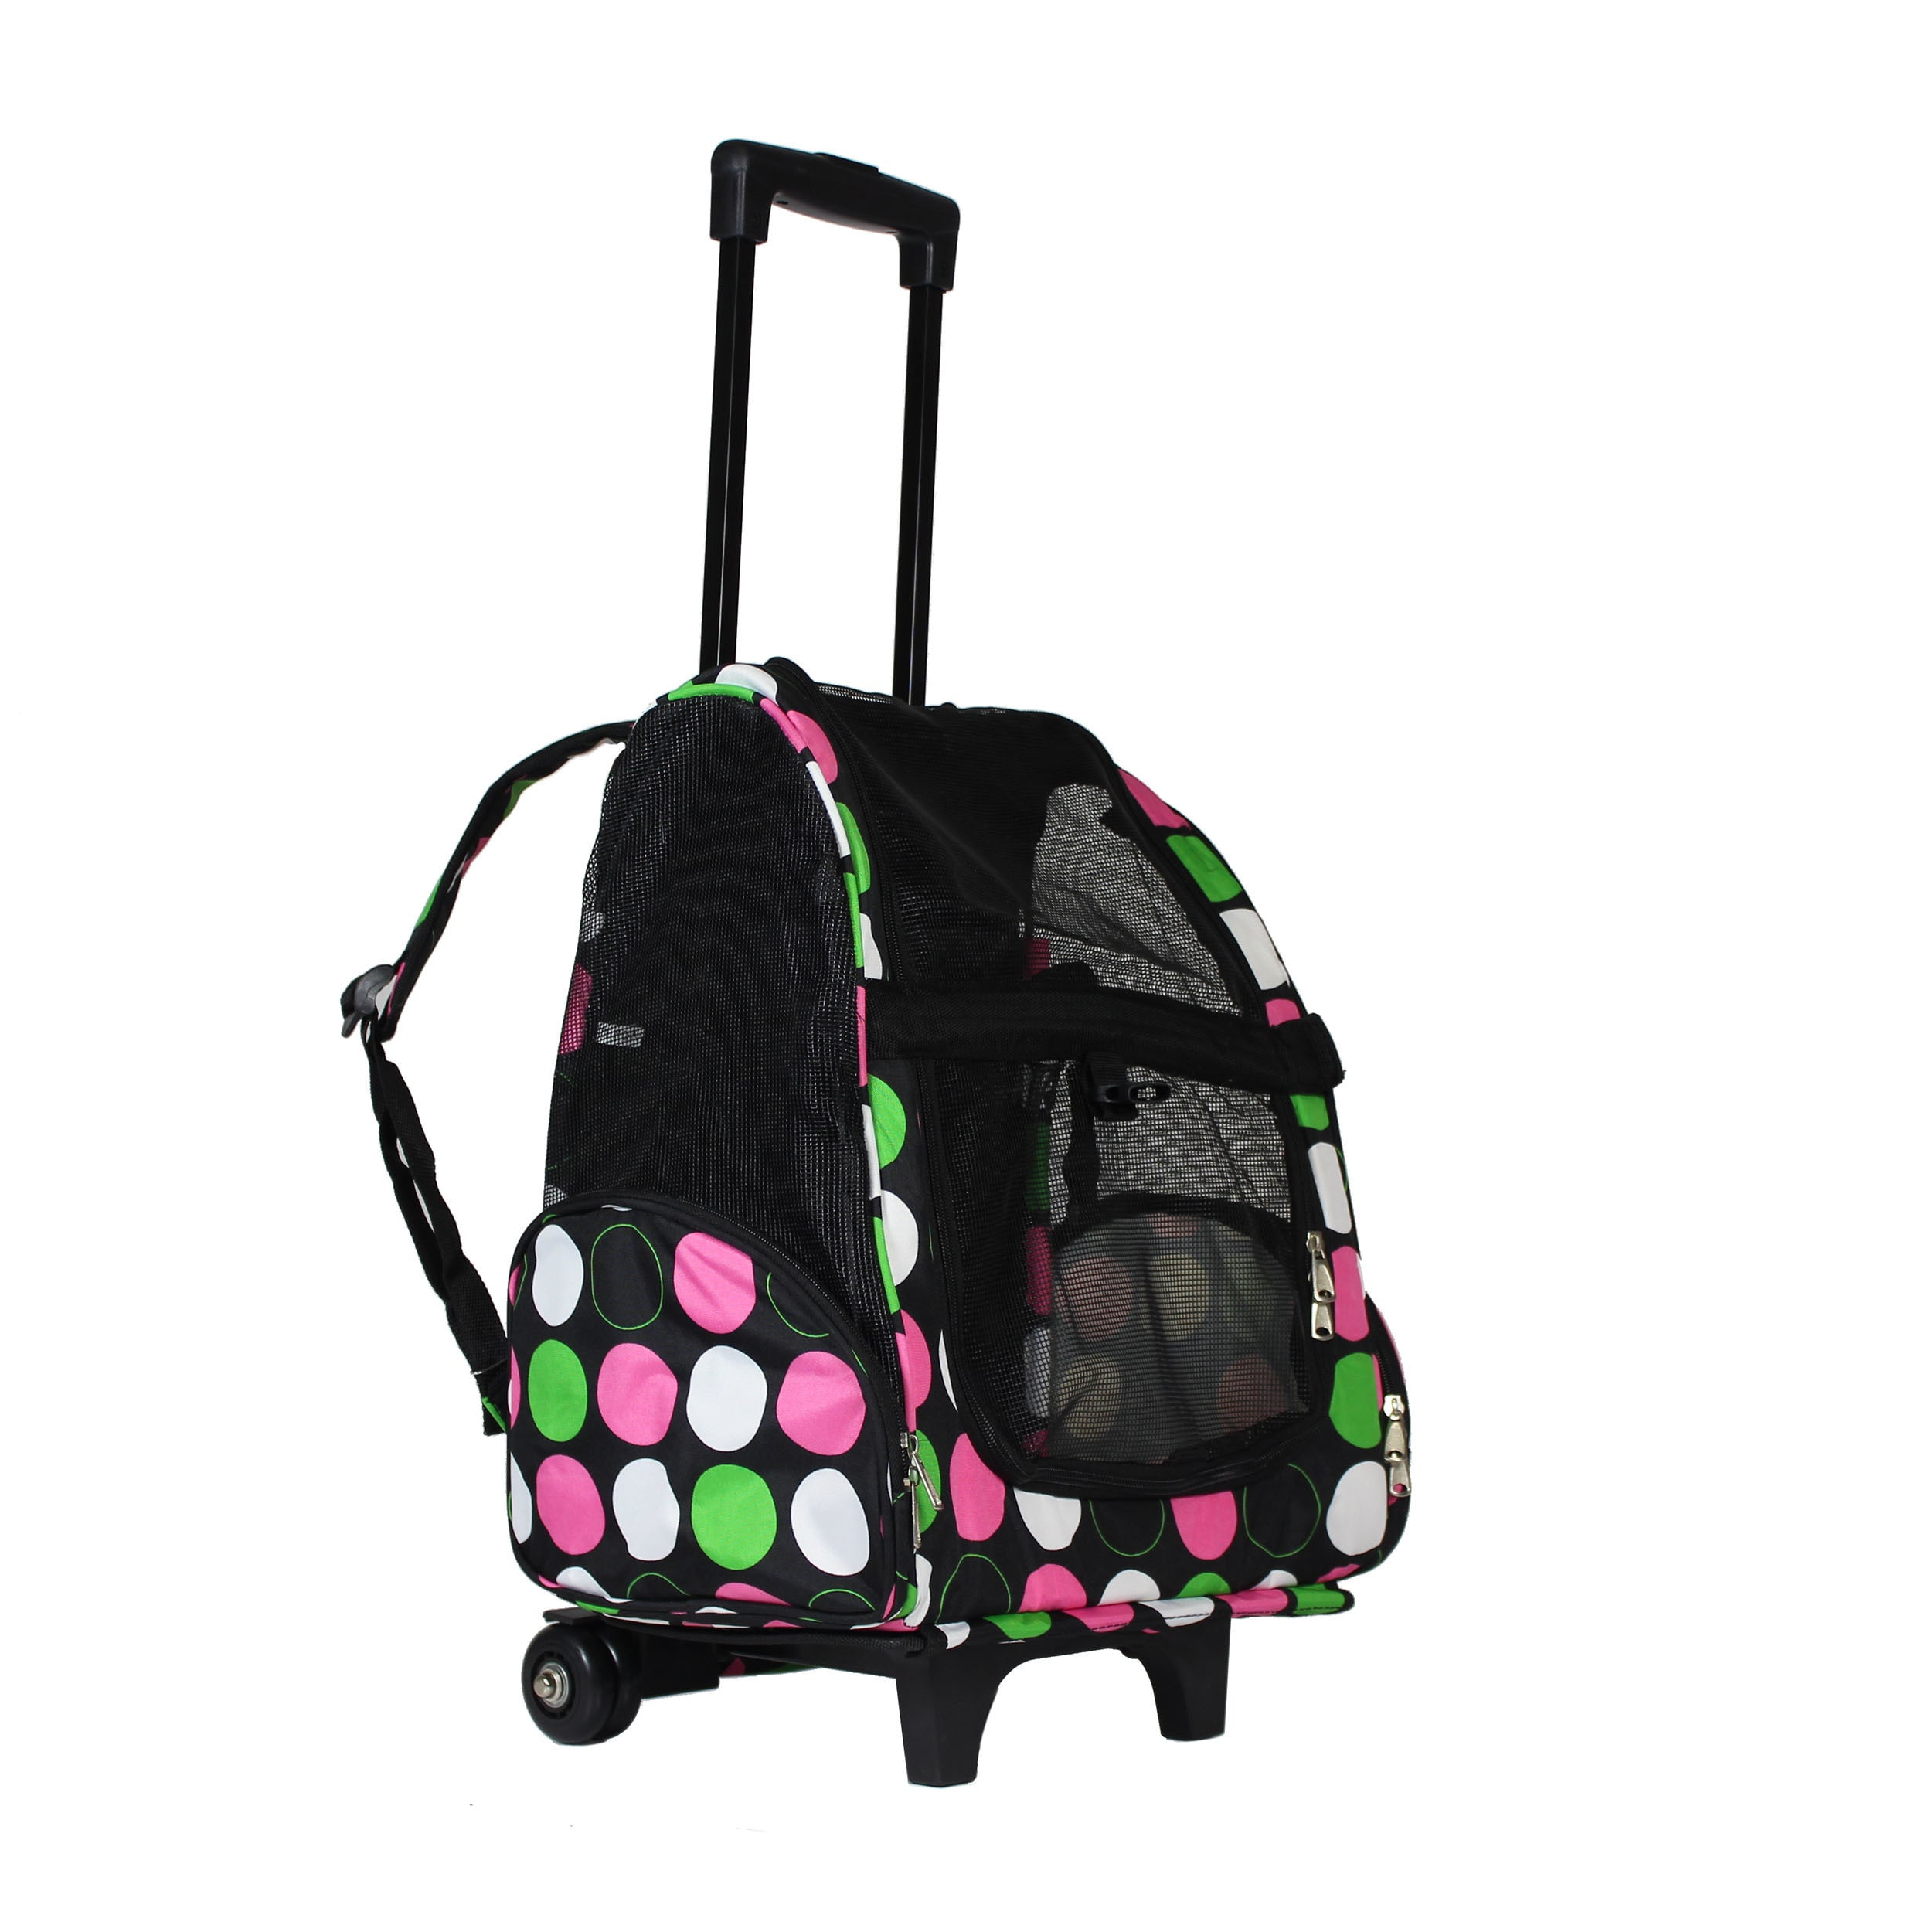 8eaea36dbda Shop World Traveler Polka Dot 20-Inch Rolling Small Pet Carrier Backpack  Carry-On Convertible - Free Shipping Today - Overstock - 20194075